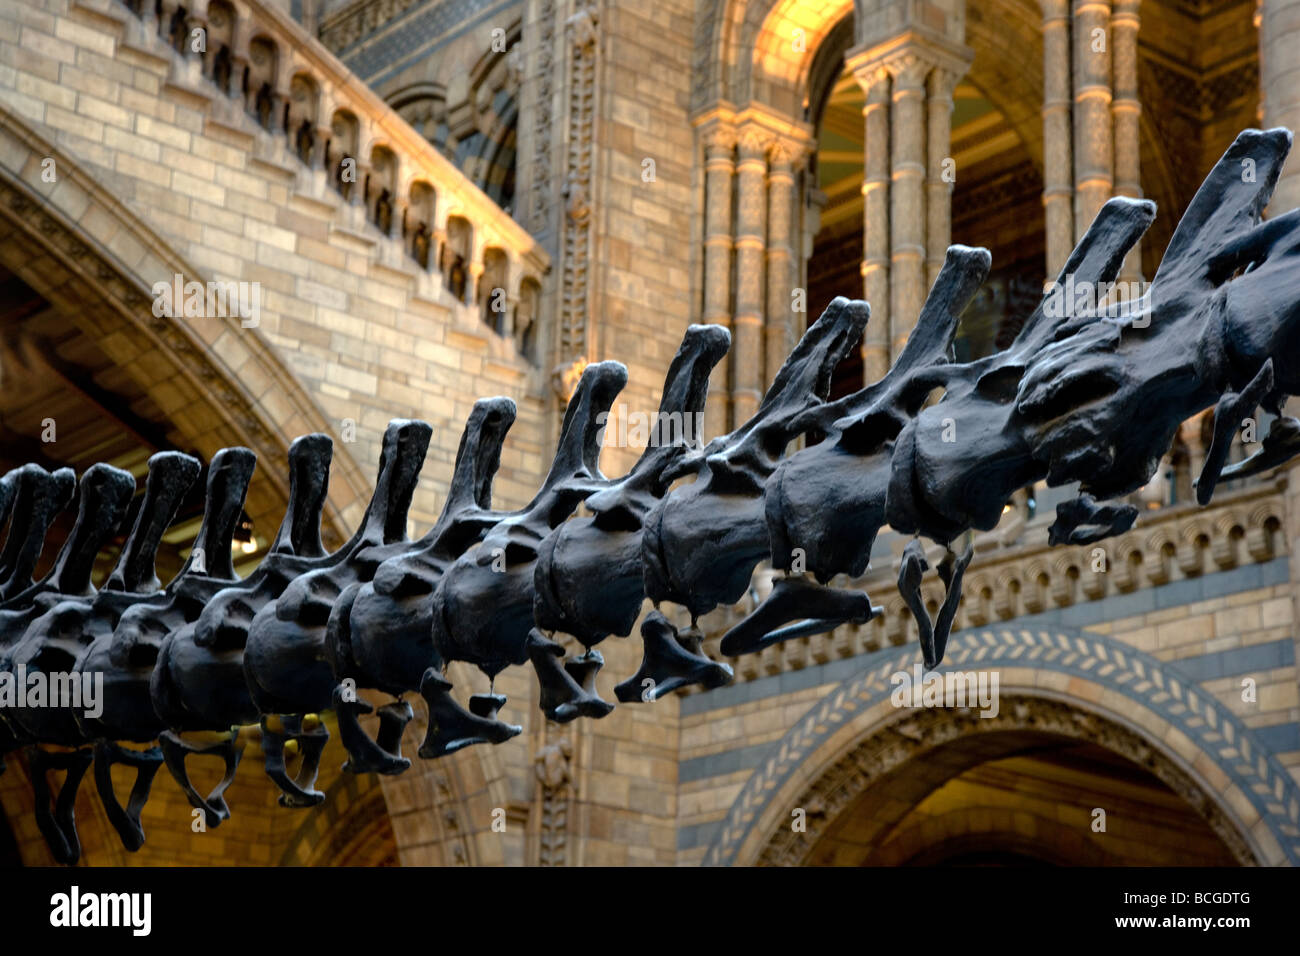 Tail vertebrae of a Diplodocus dinosaur in the entrance hall of the Natural History Museum Kensington London - Stock Image